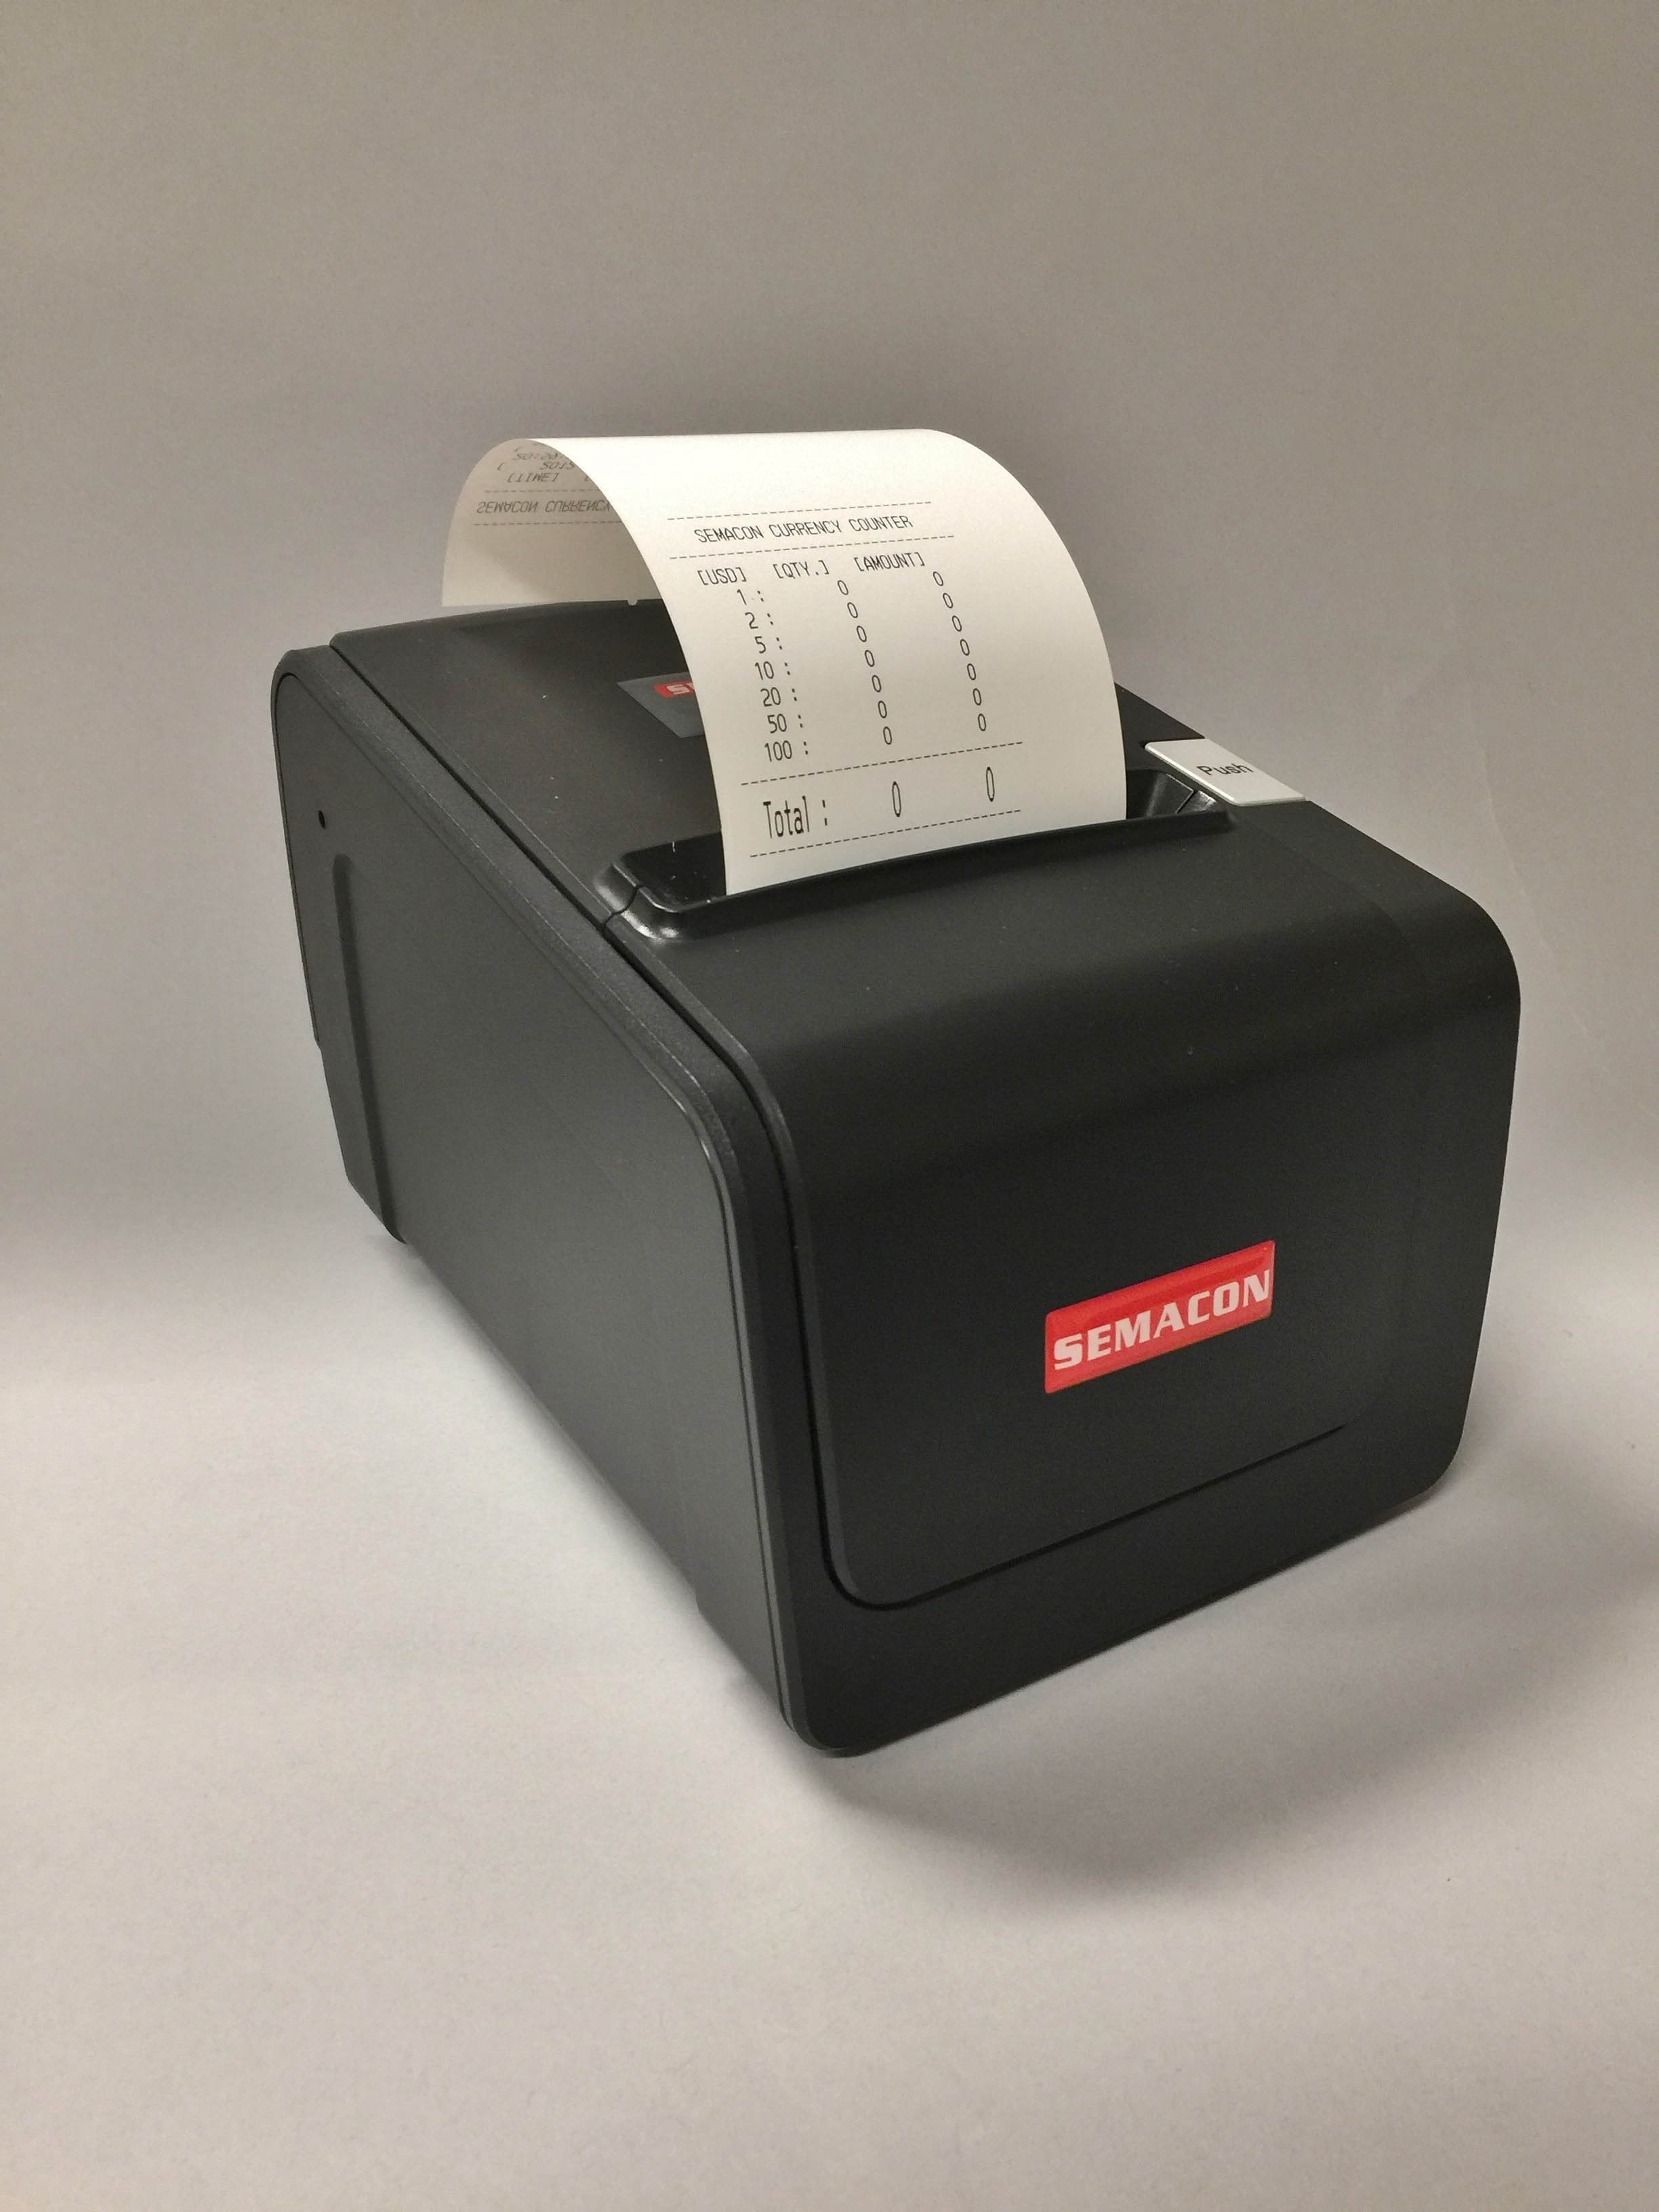 Semacon TP-2080 Thermal Printer